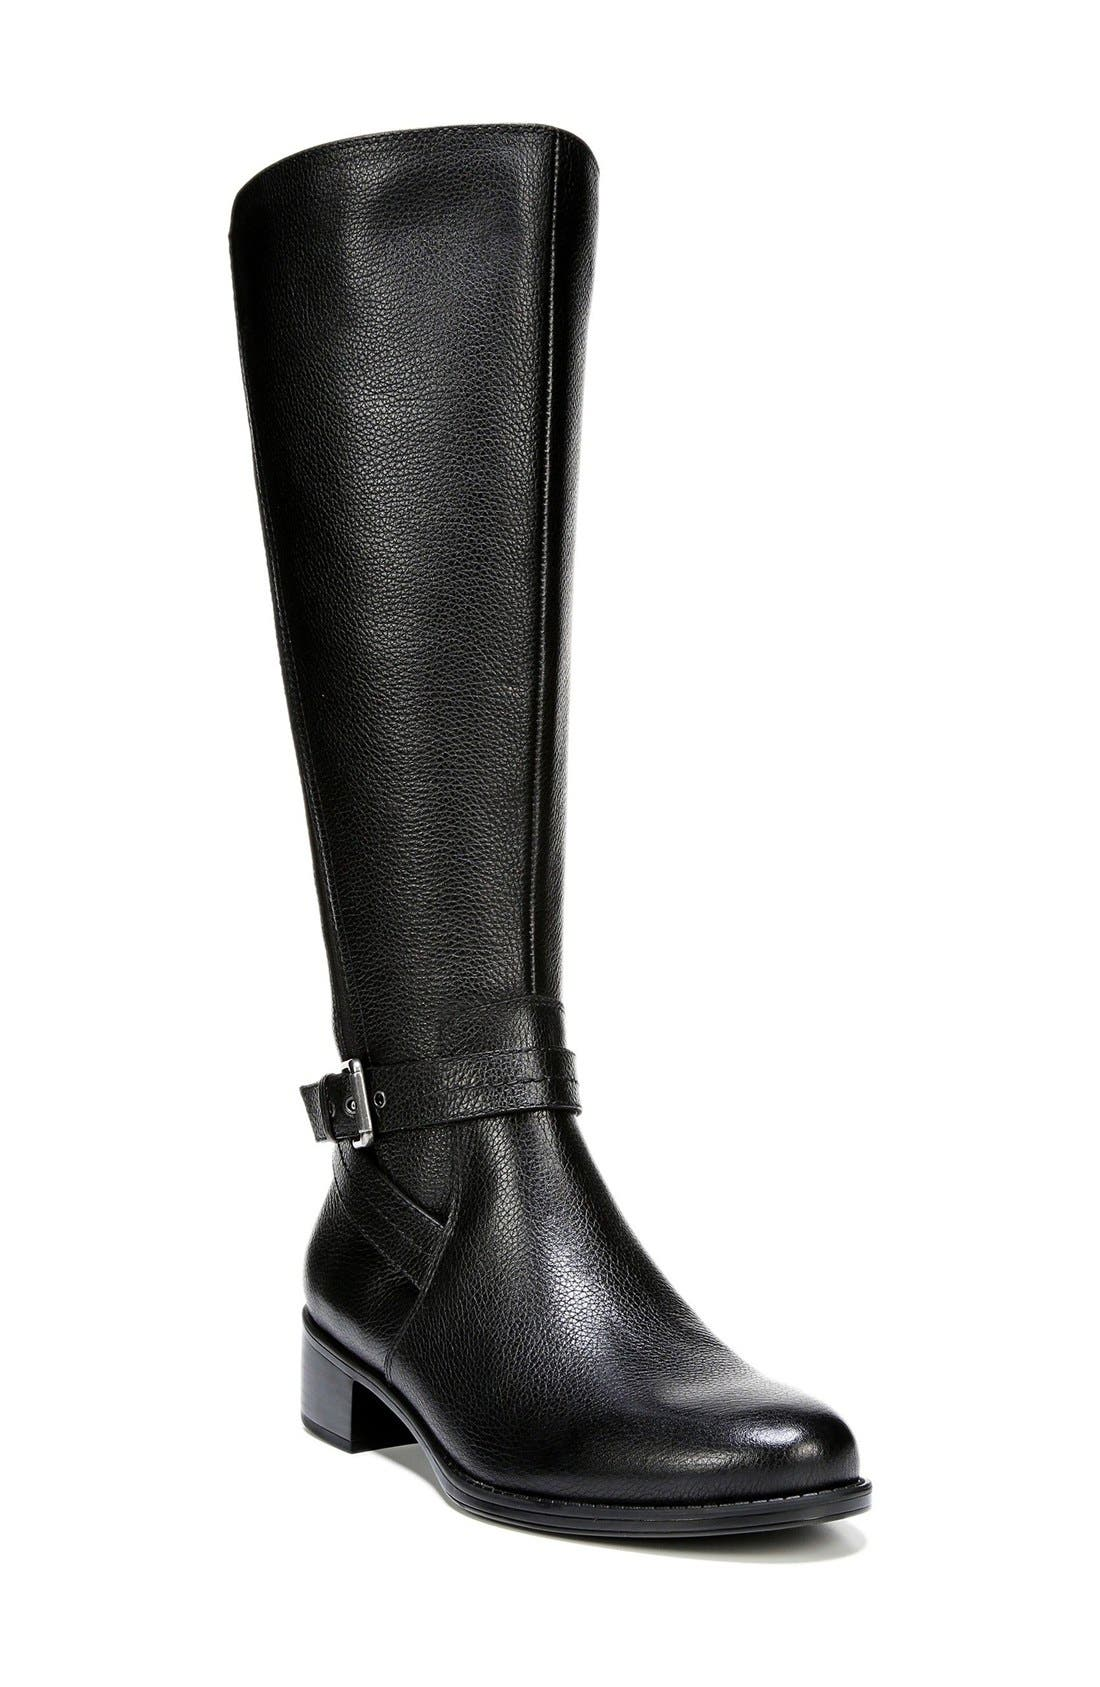 Main Image - Naturalizer 'Wynnie' Riding Boot (Women)